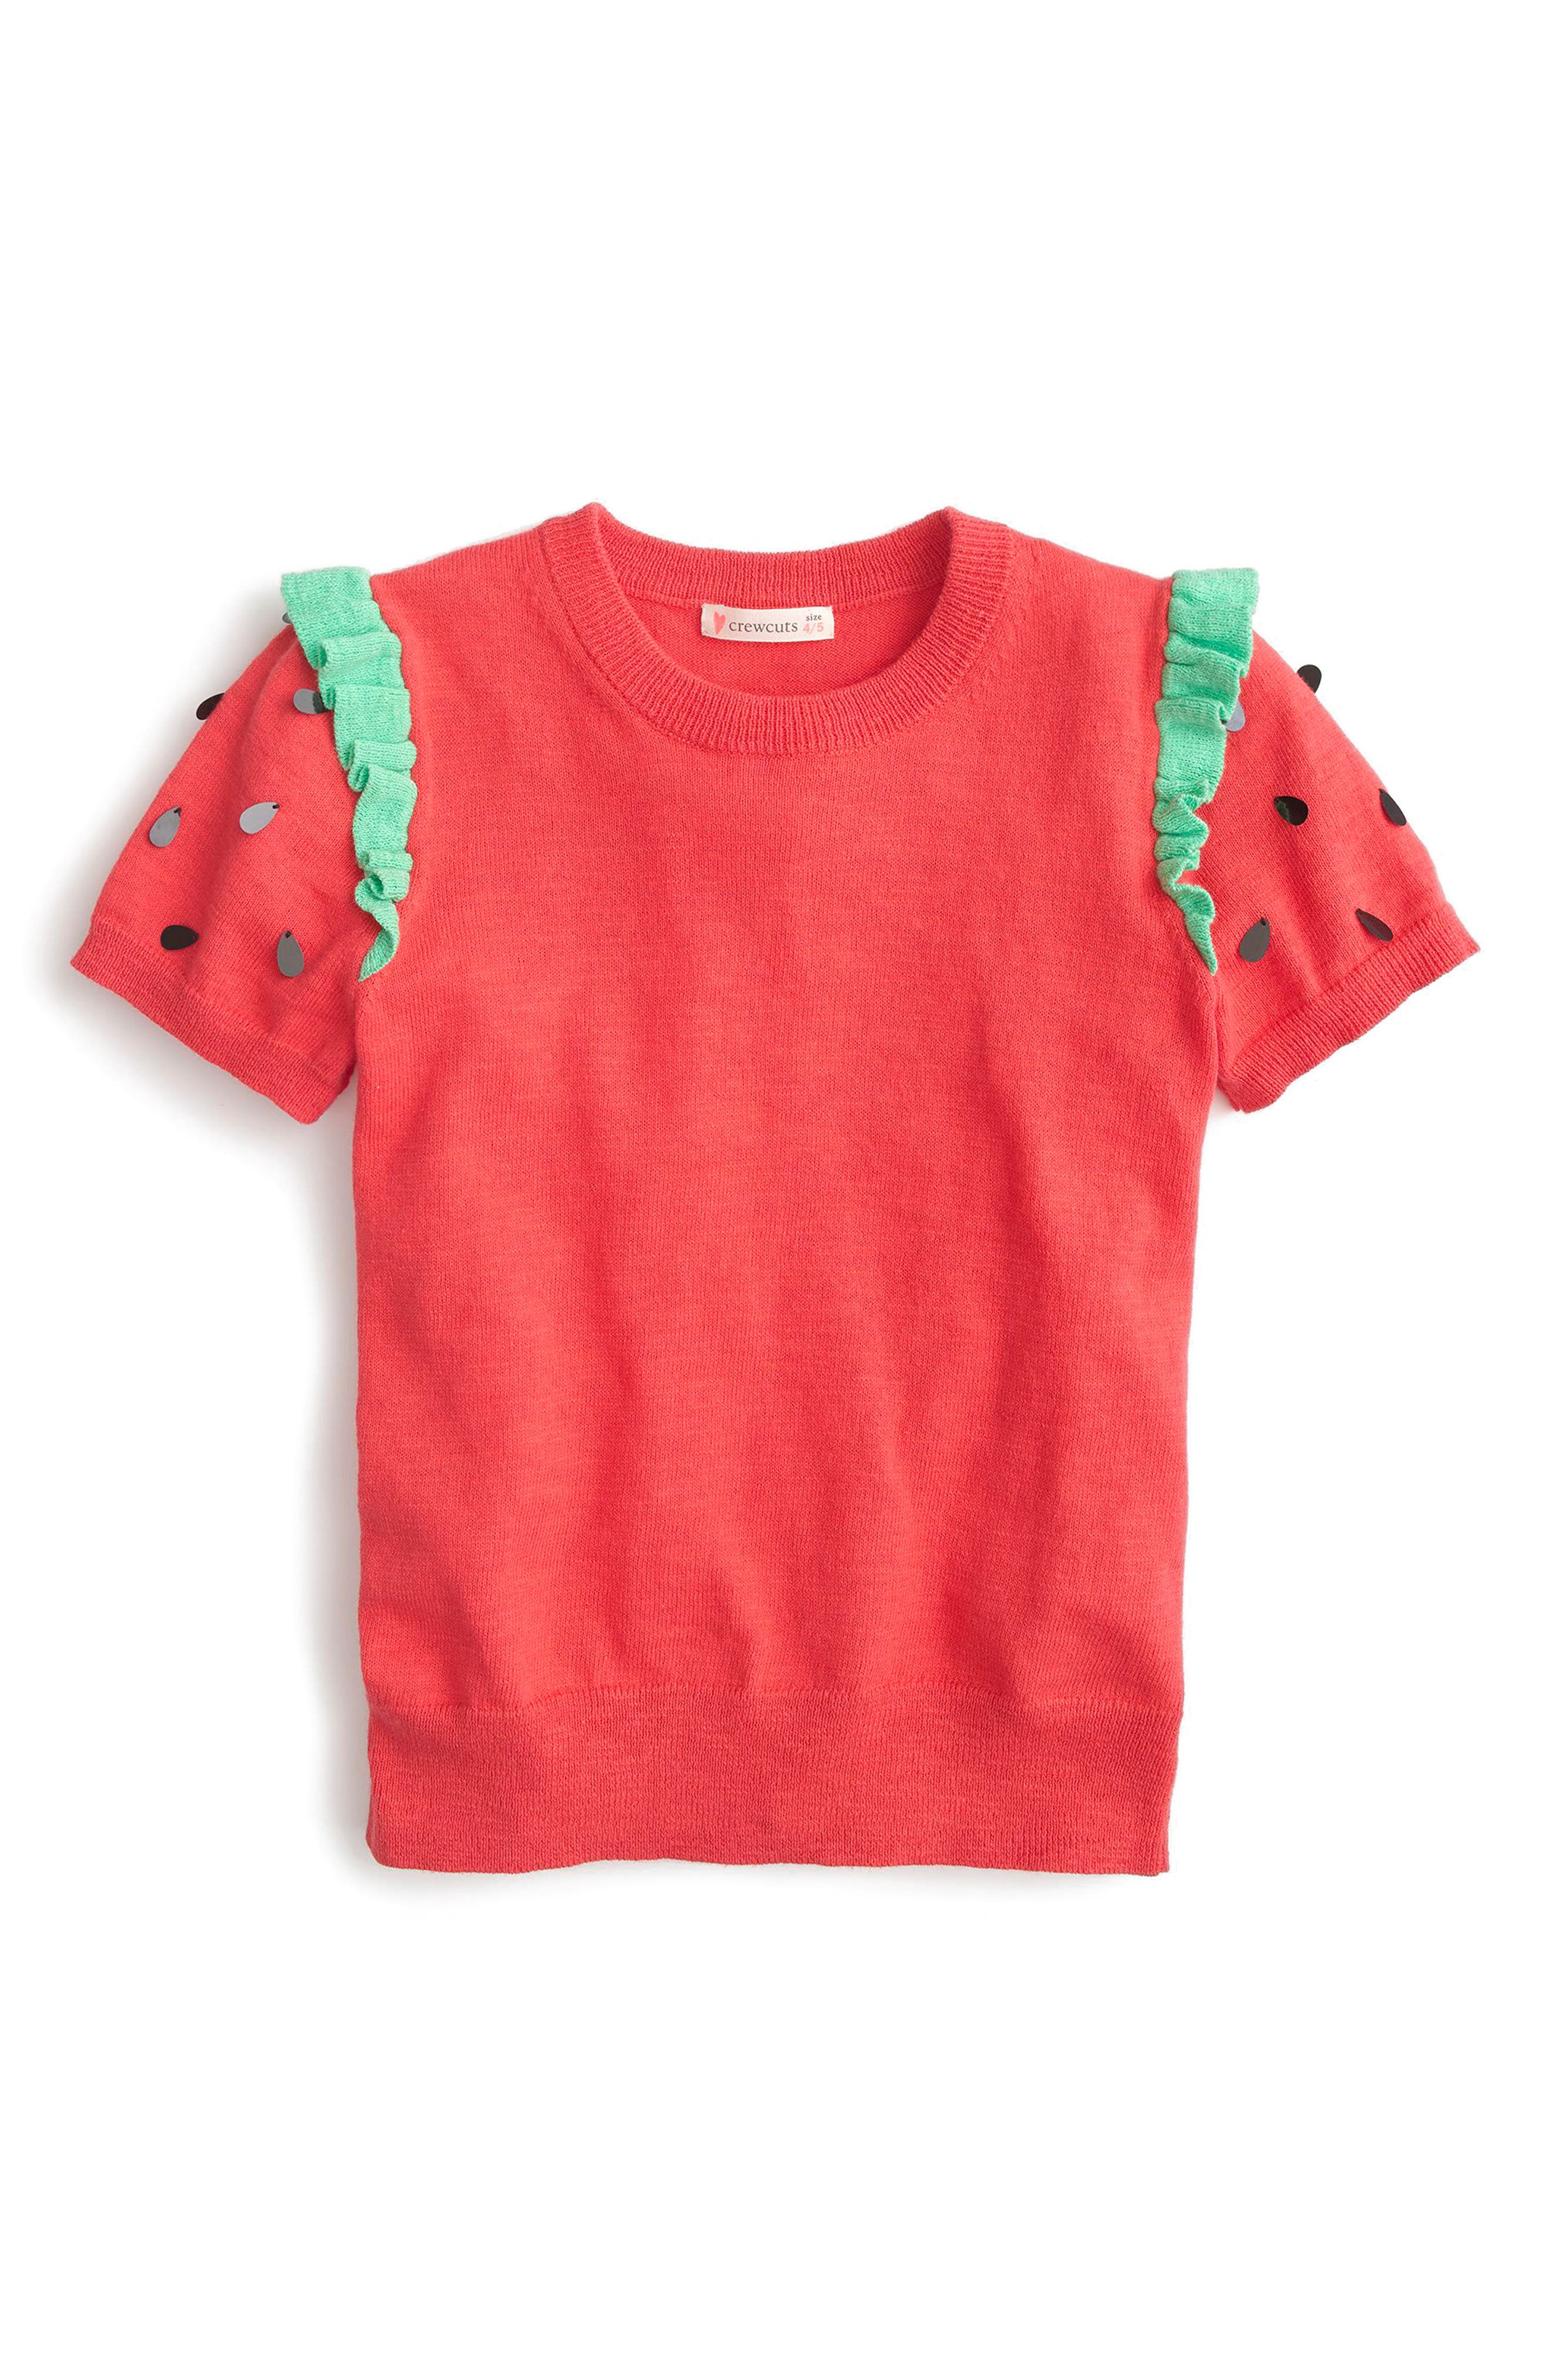 J.Crew Strawberry Goodness Short Sleeve Sweater,                         Main,                         color, 600